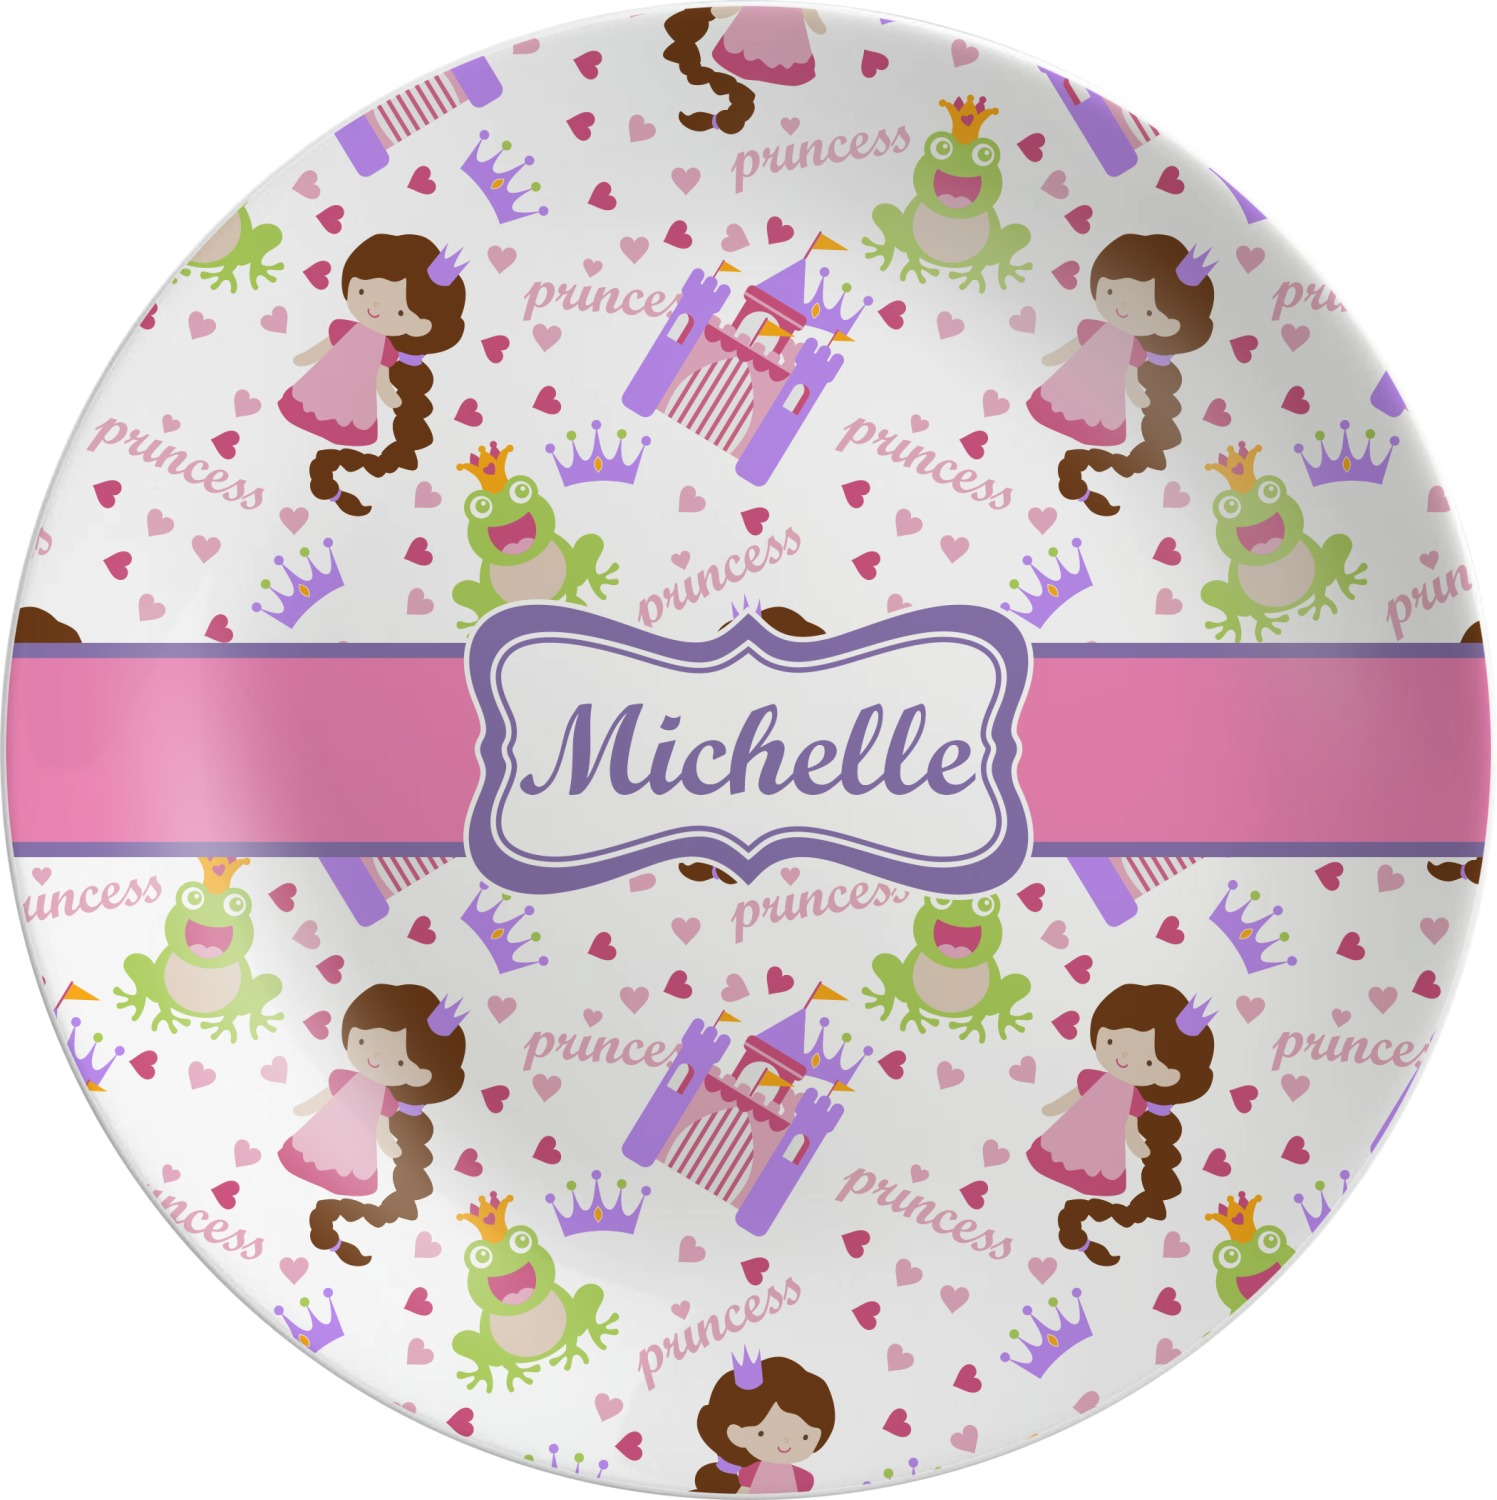 Princess Print Dinner Set - 4 Pc (Personalized) Princess Print Melamine Plate ...  sc 1 st  YouCustomizeIt : personalized toddler plate sets - pezcame.com